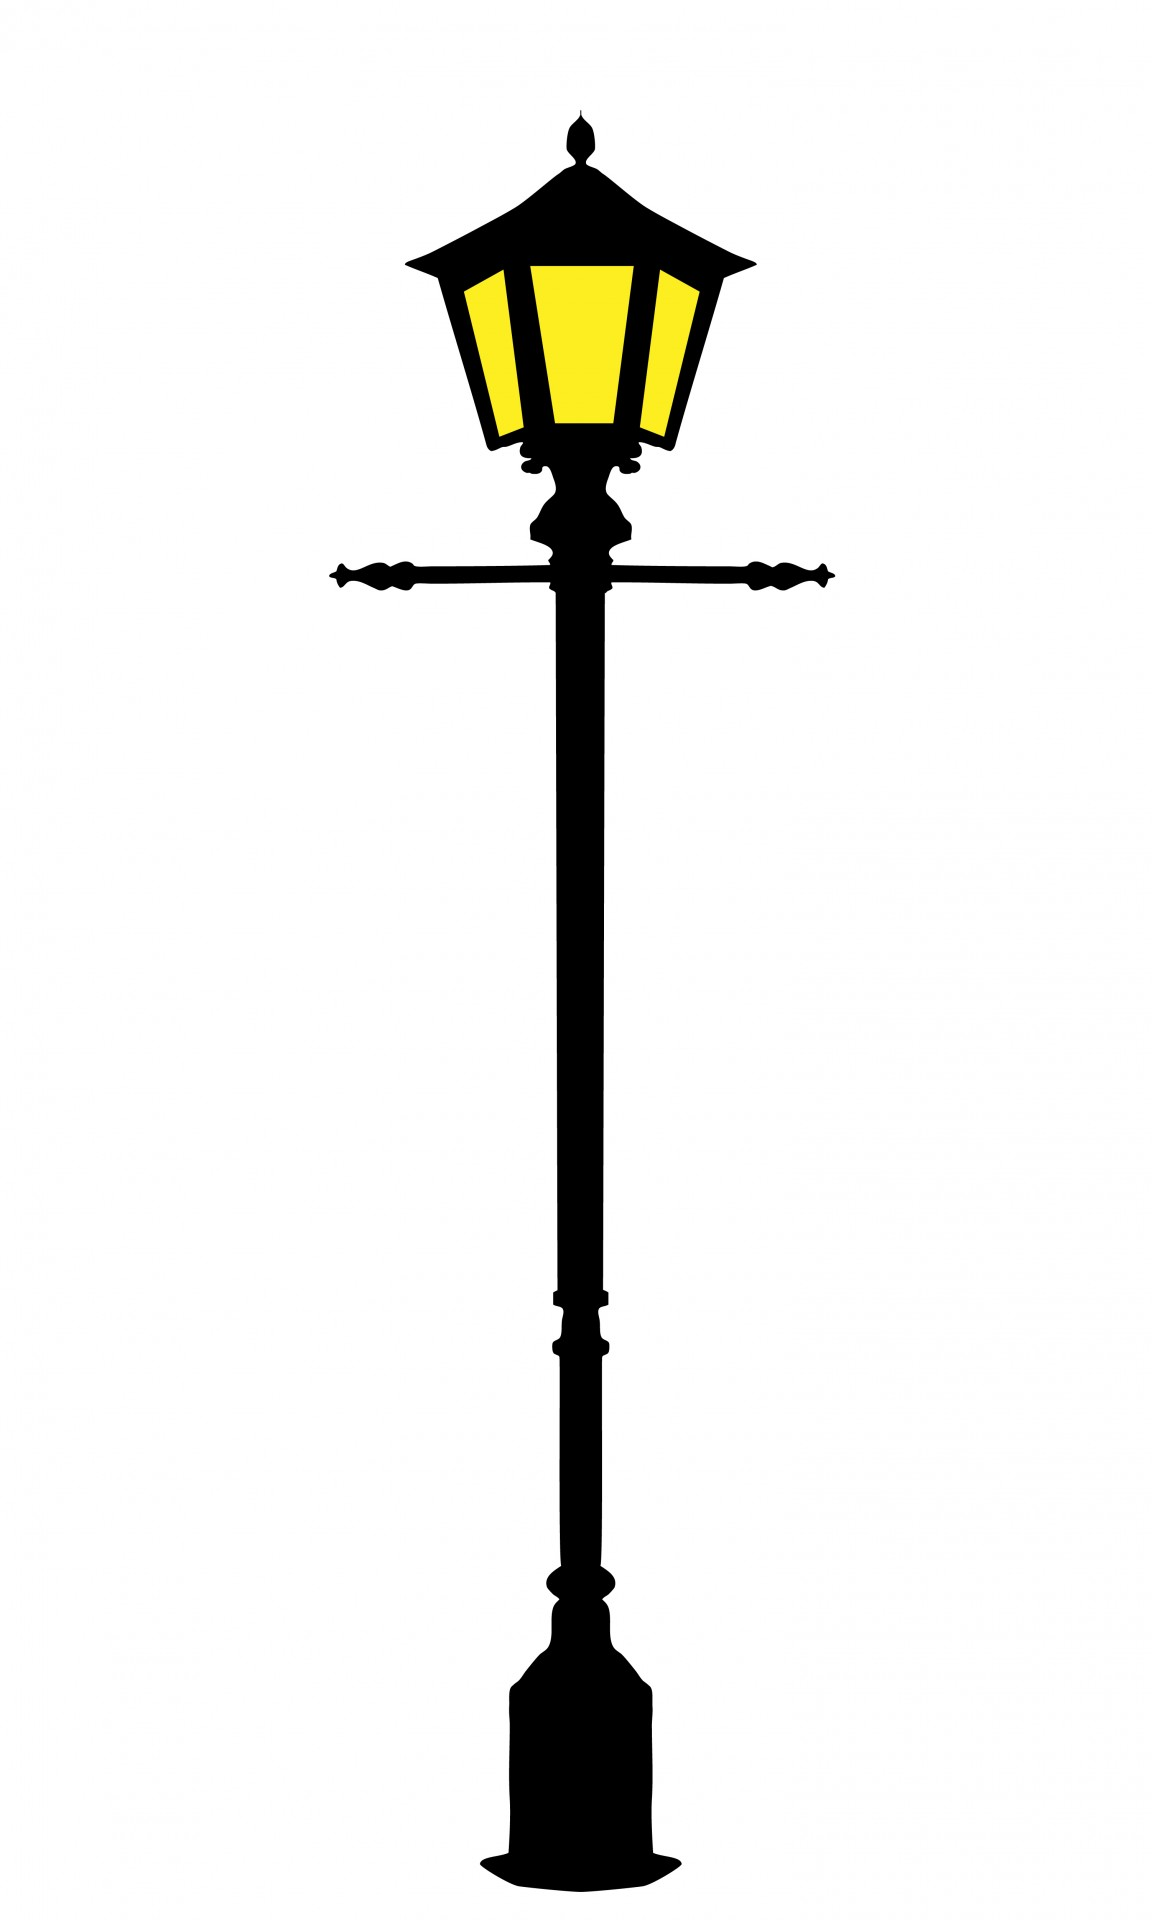 hight resolution of 1152x1920 vintage street lighting clipart free stock photo